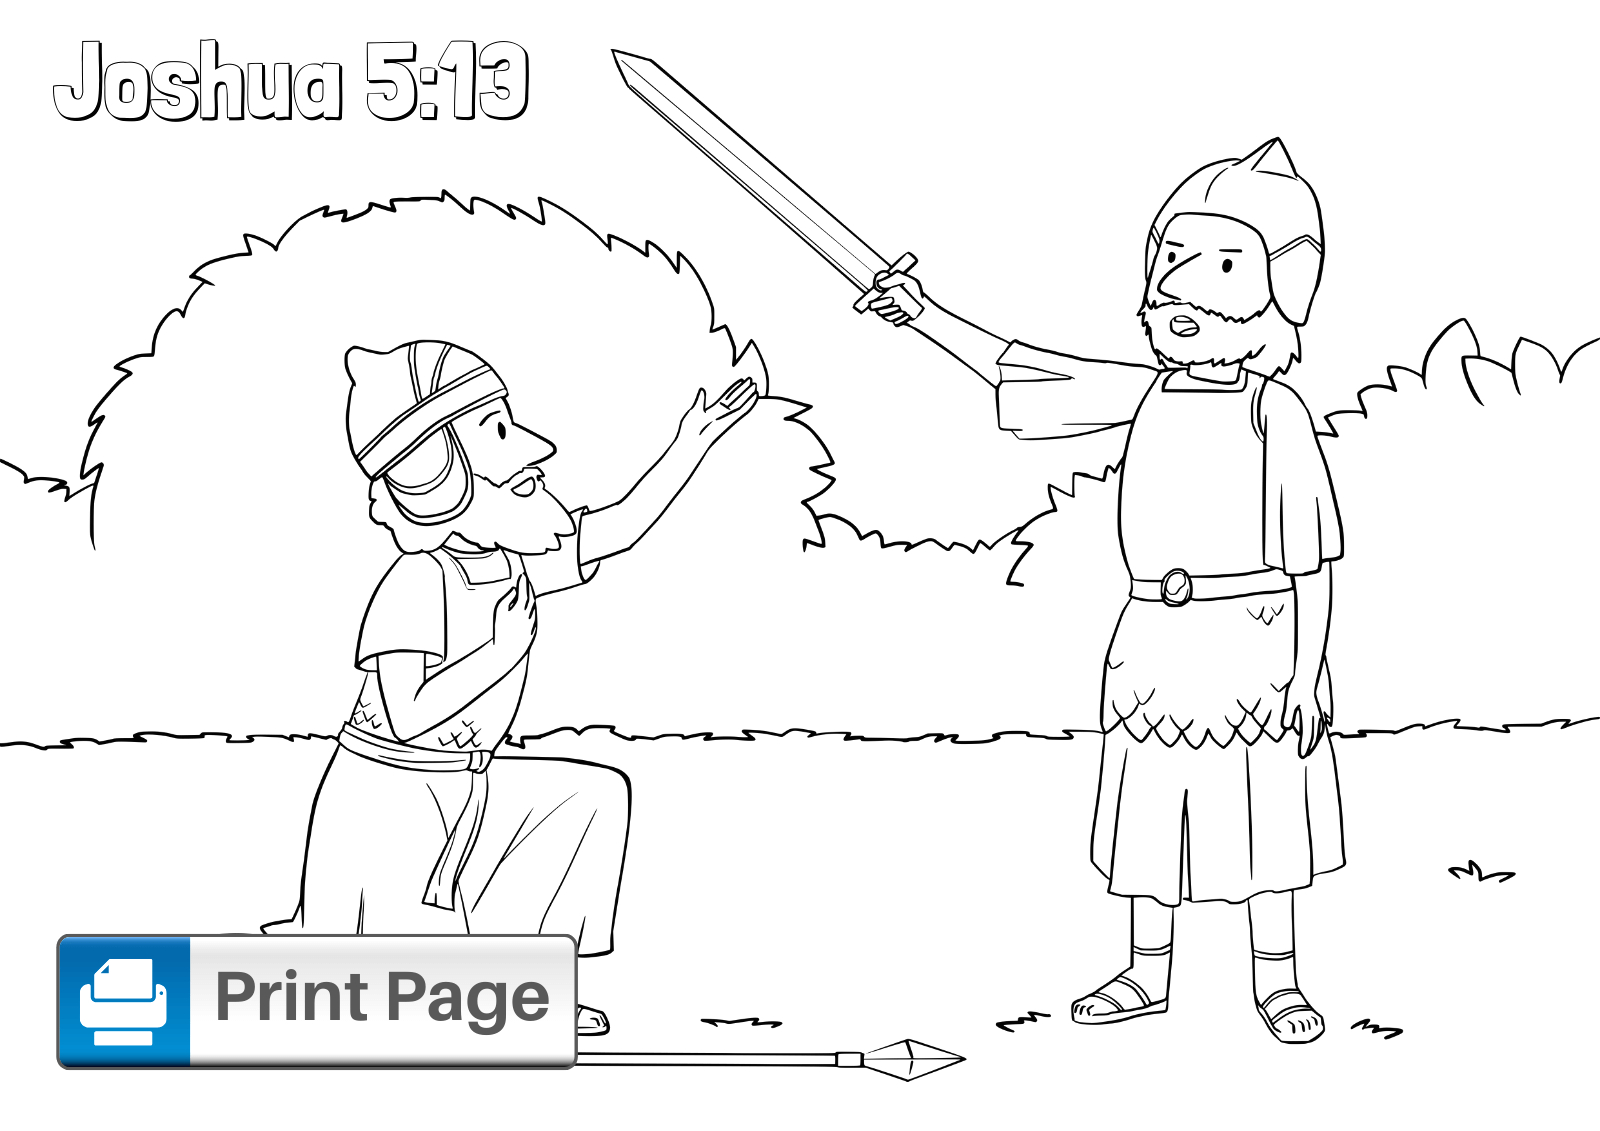 Walls Of Jericho Bible Story Coloring Pages Free Walls Of Jericho Coloring Pages for Kids Printable